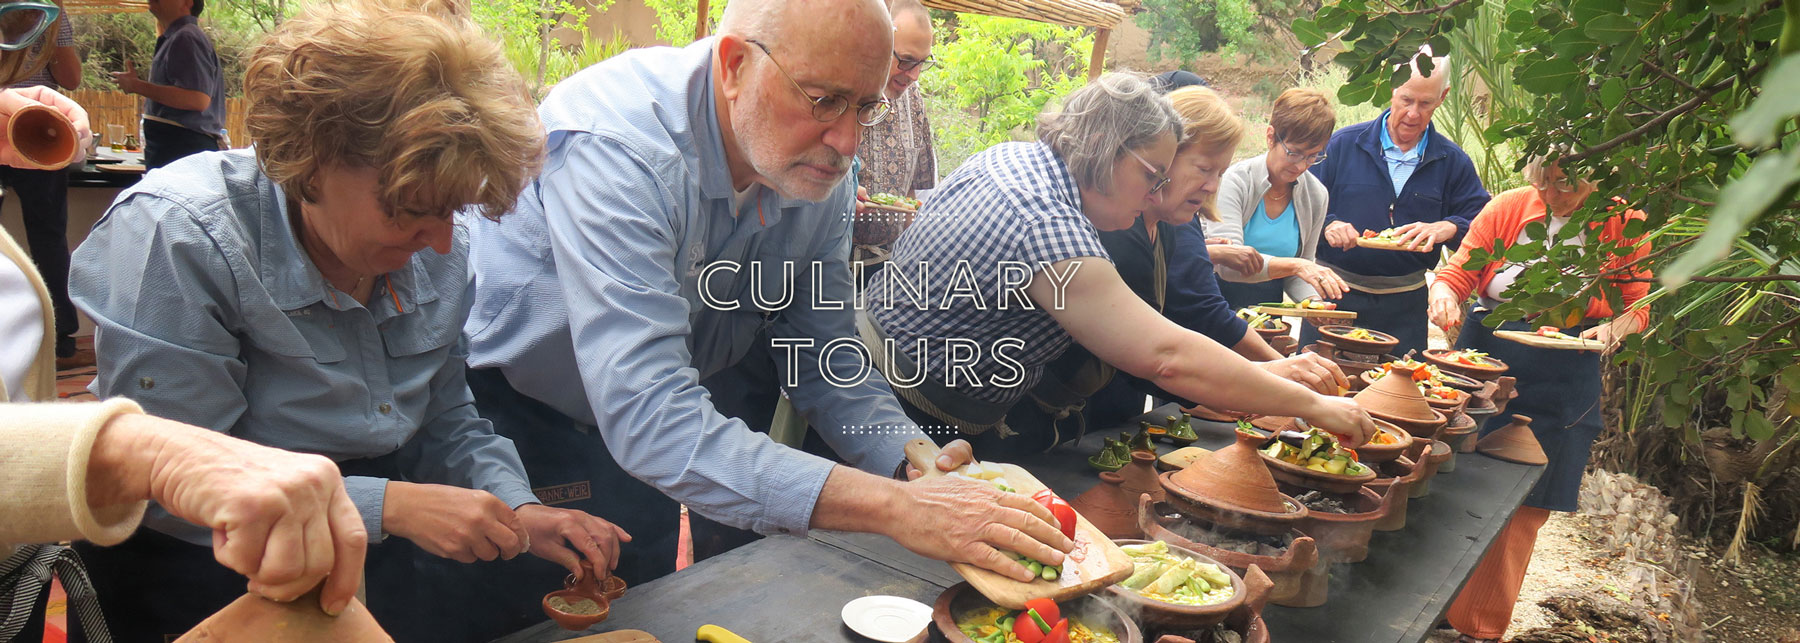 Culinary Tour Class Outdoor